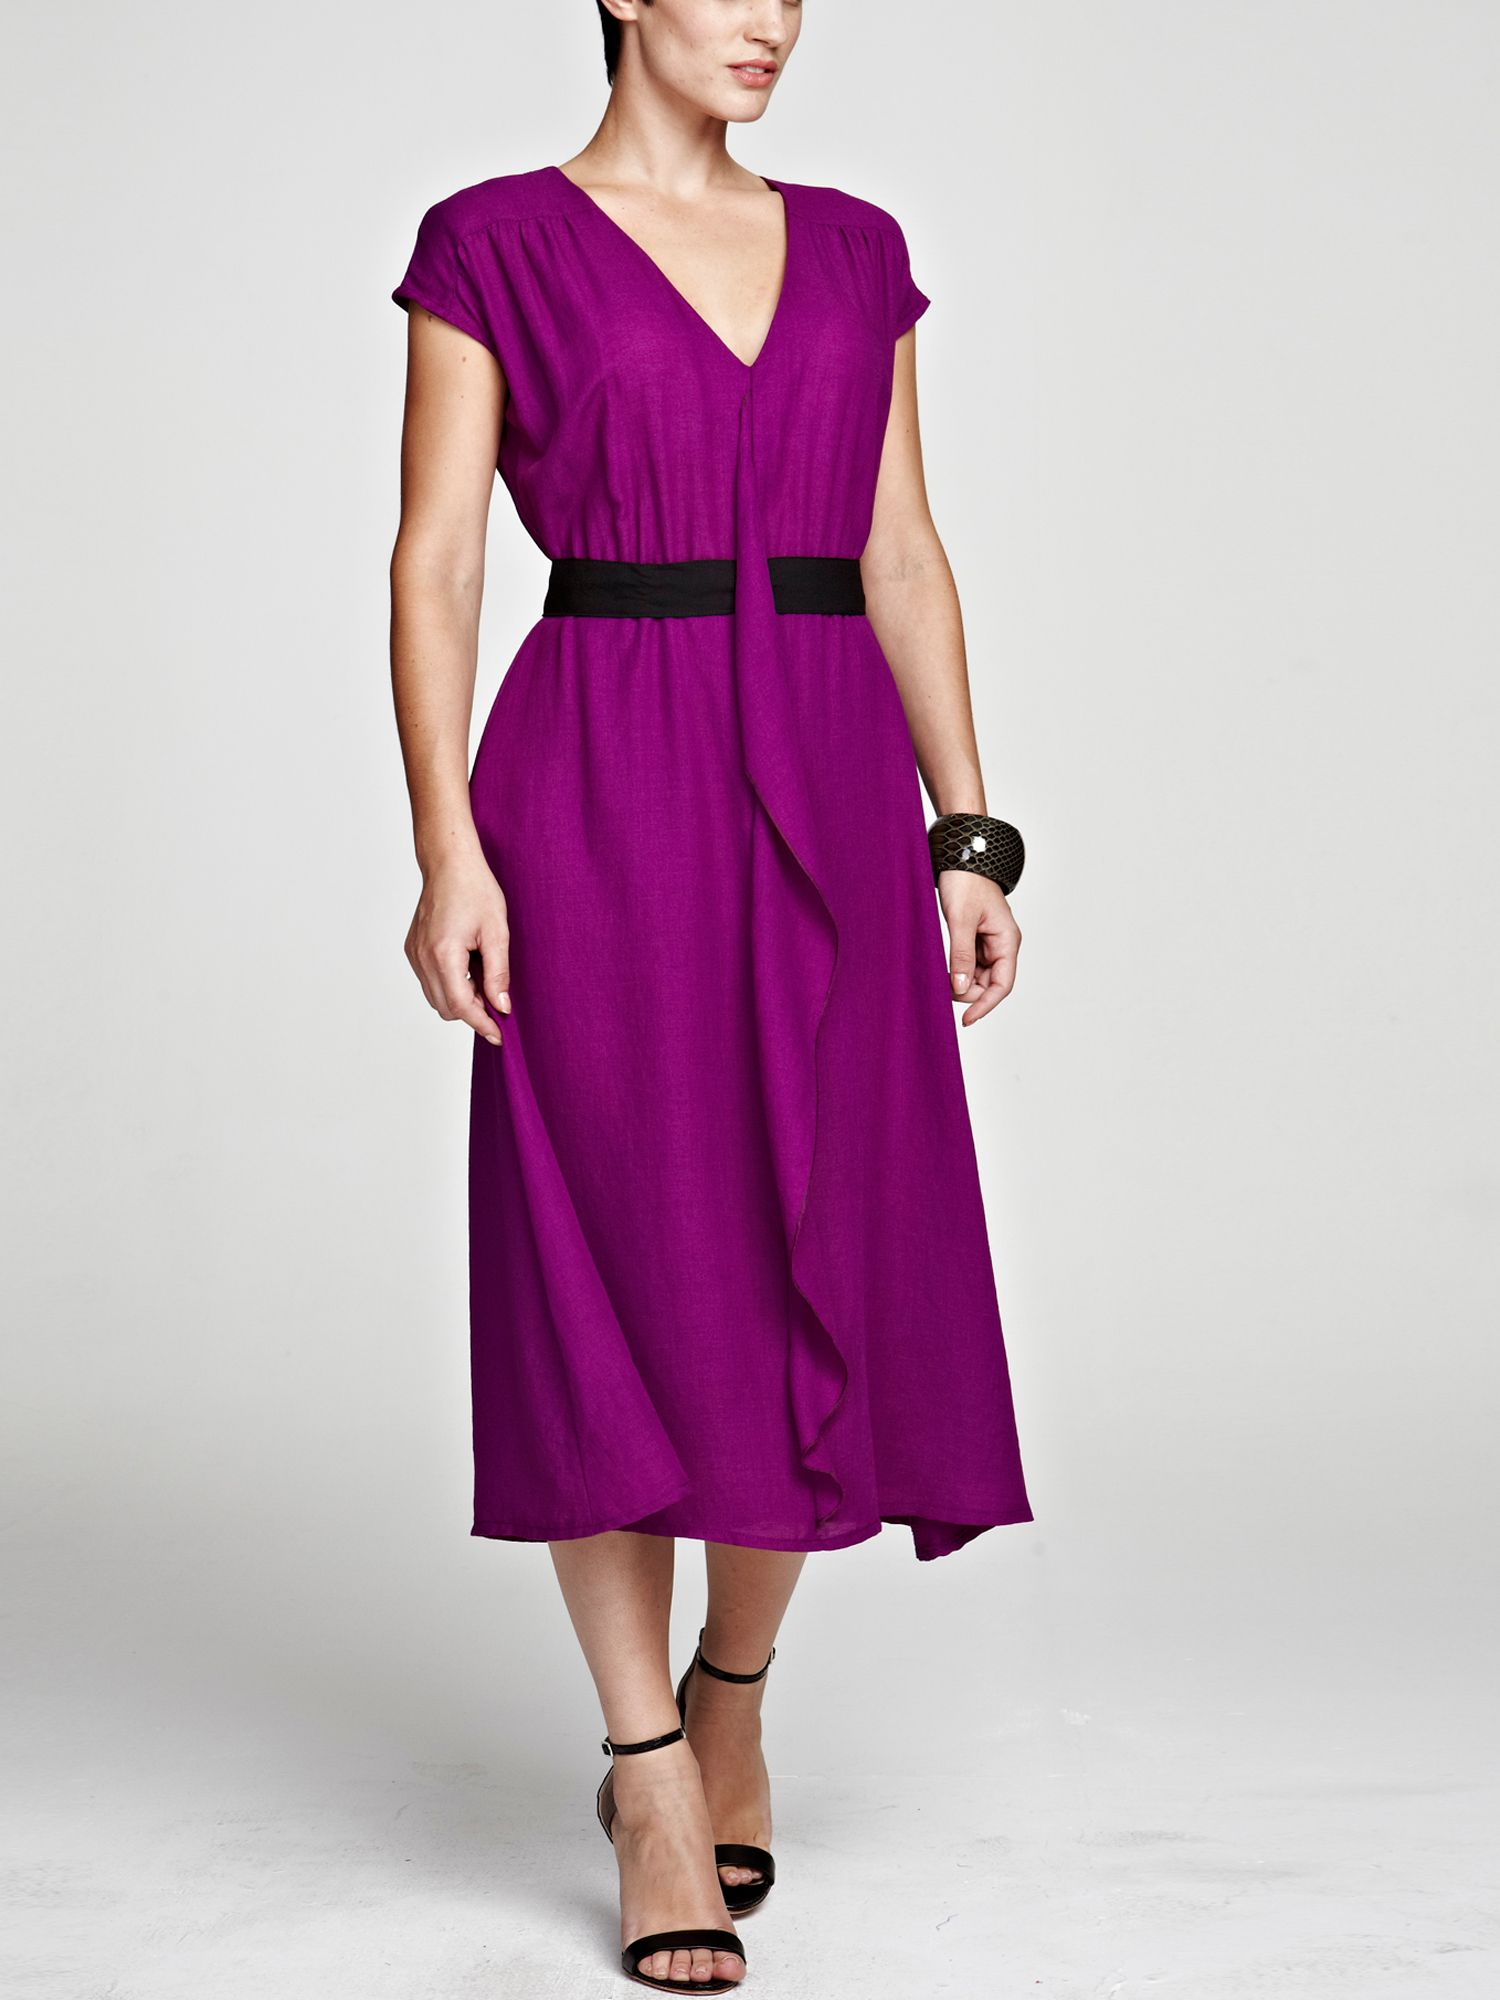 V neck ruffle dress in clever fabric